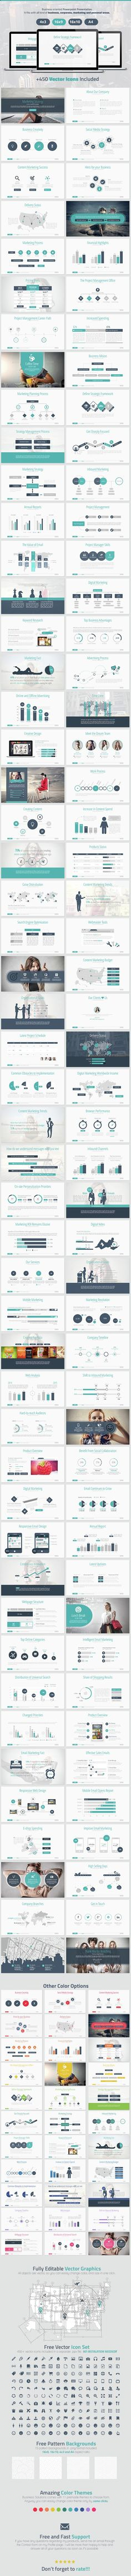 Marketing Strategy Powerpoint Presentation Template #slides Download here: graphicriver.net/...